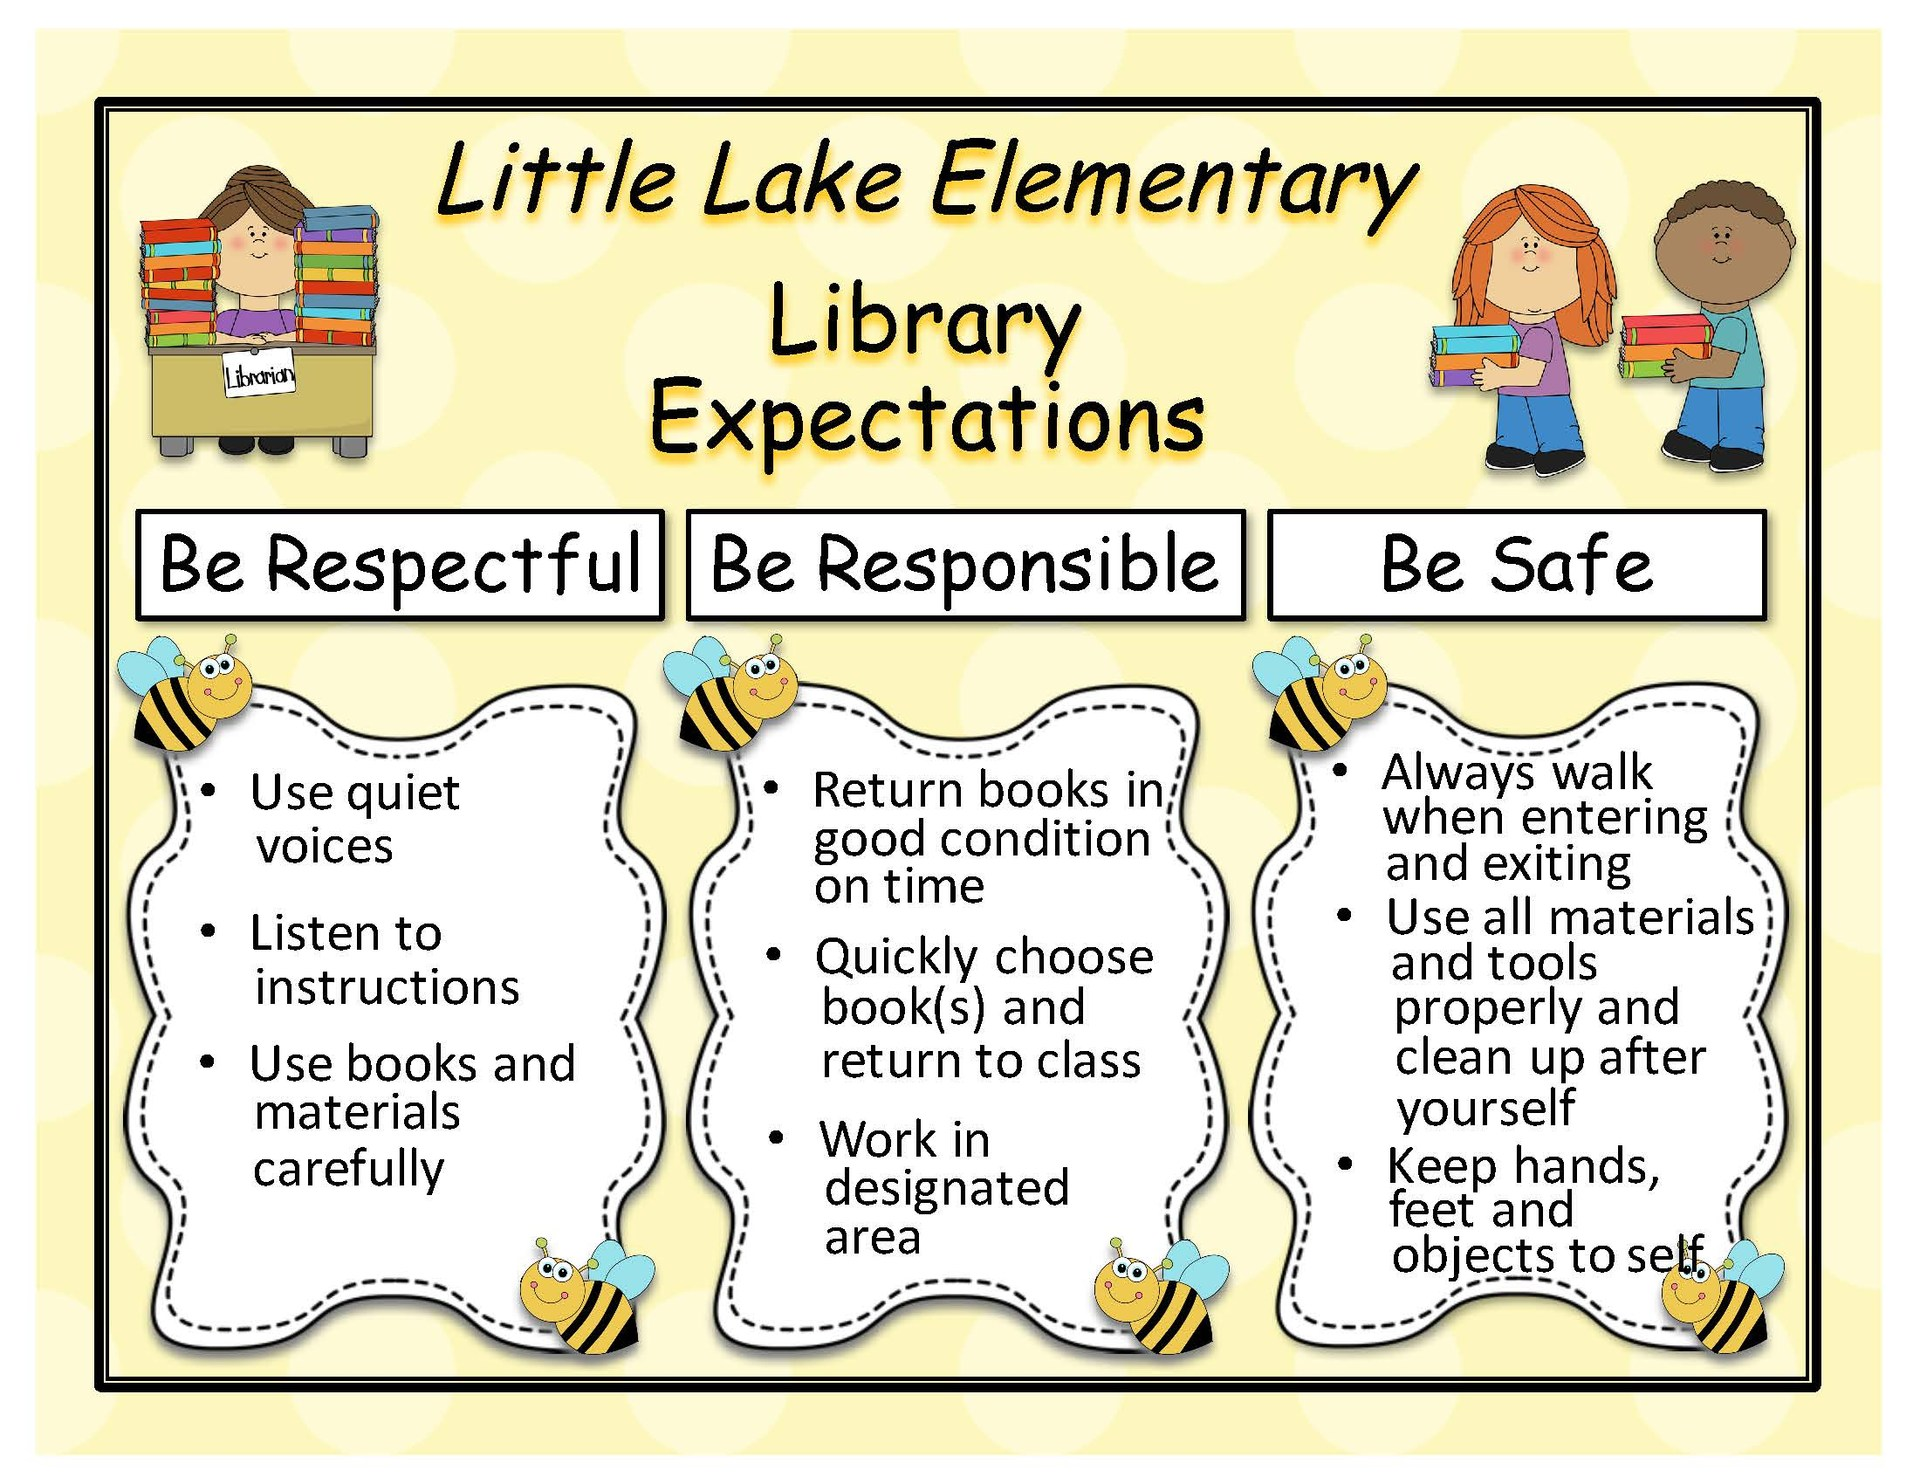 PBIS Behavioral expectations for students when they are in the library.